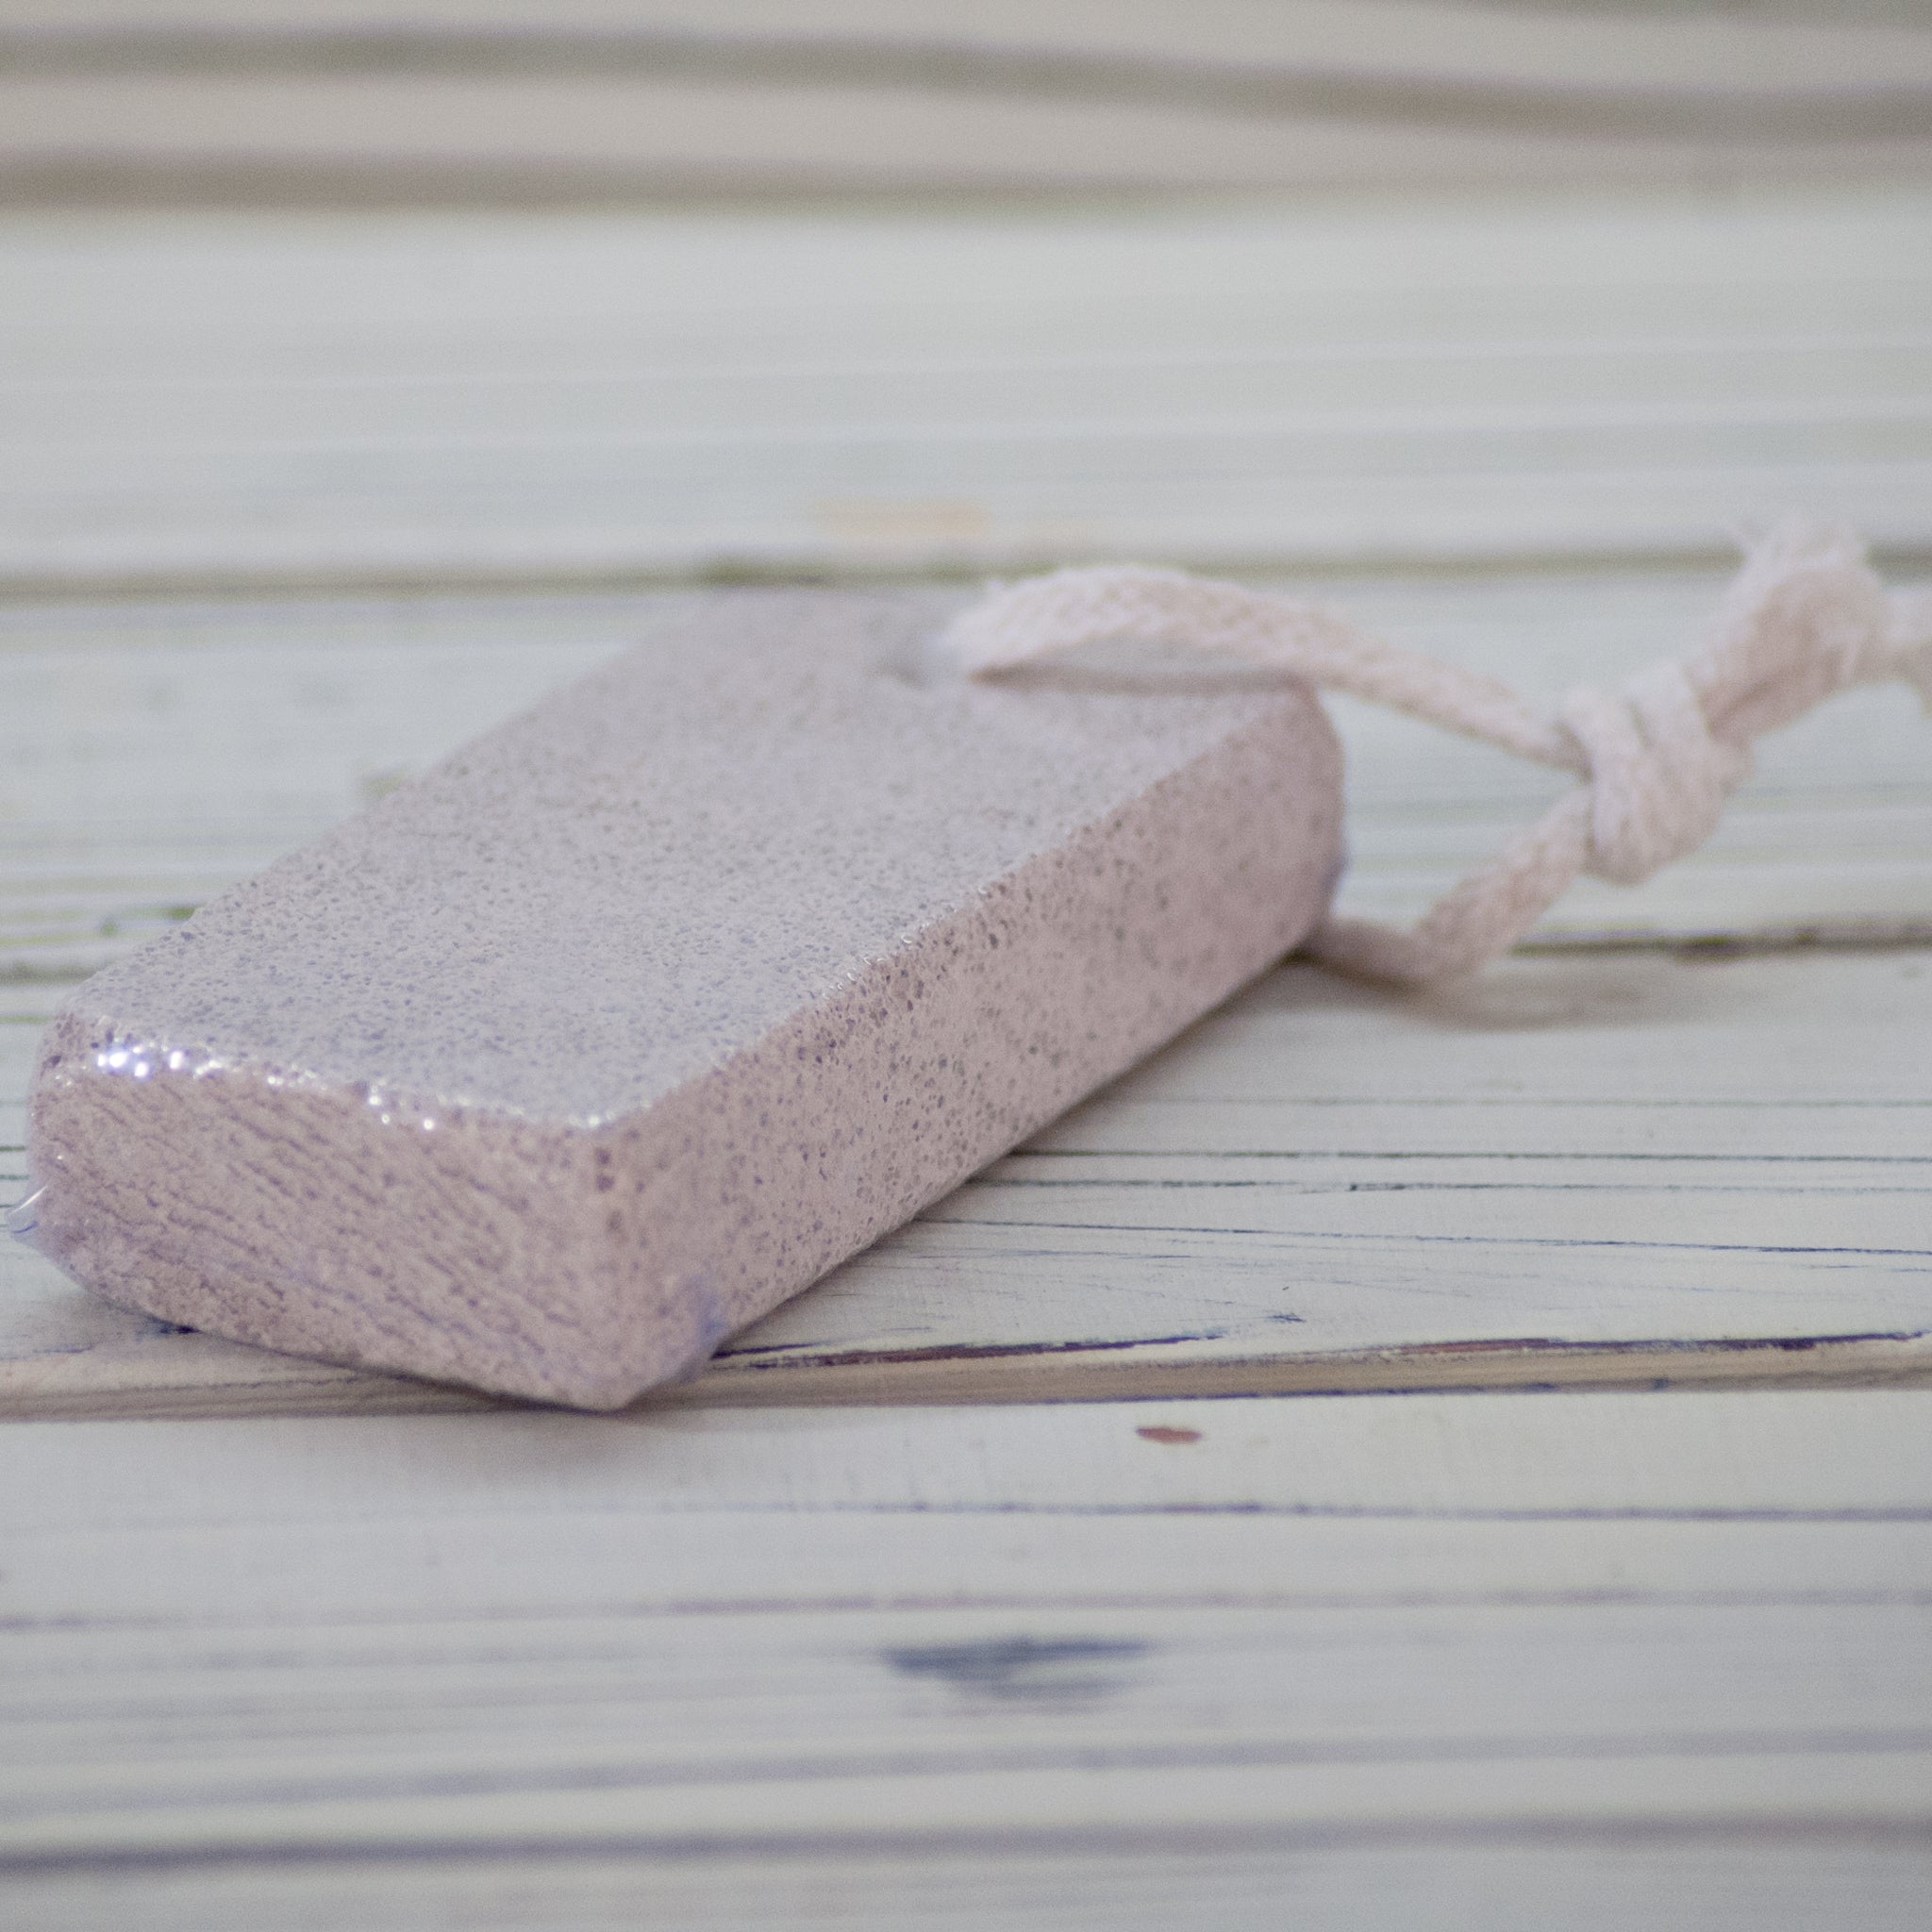 Foot Care Accessories | Pumice Stone